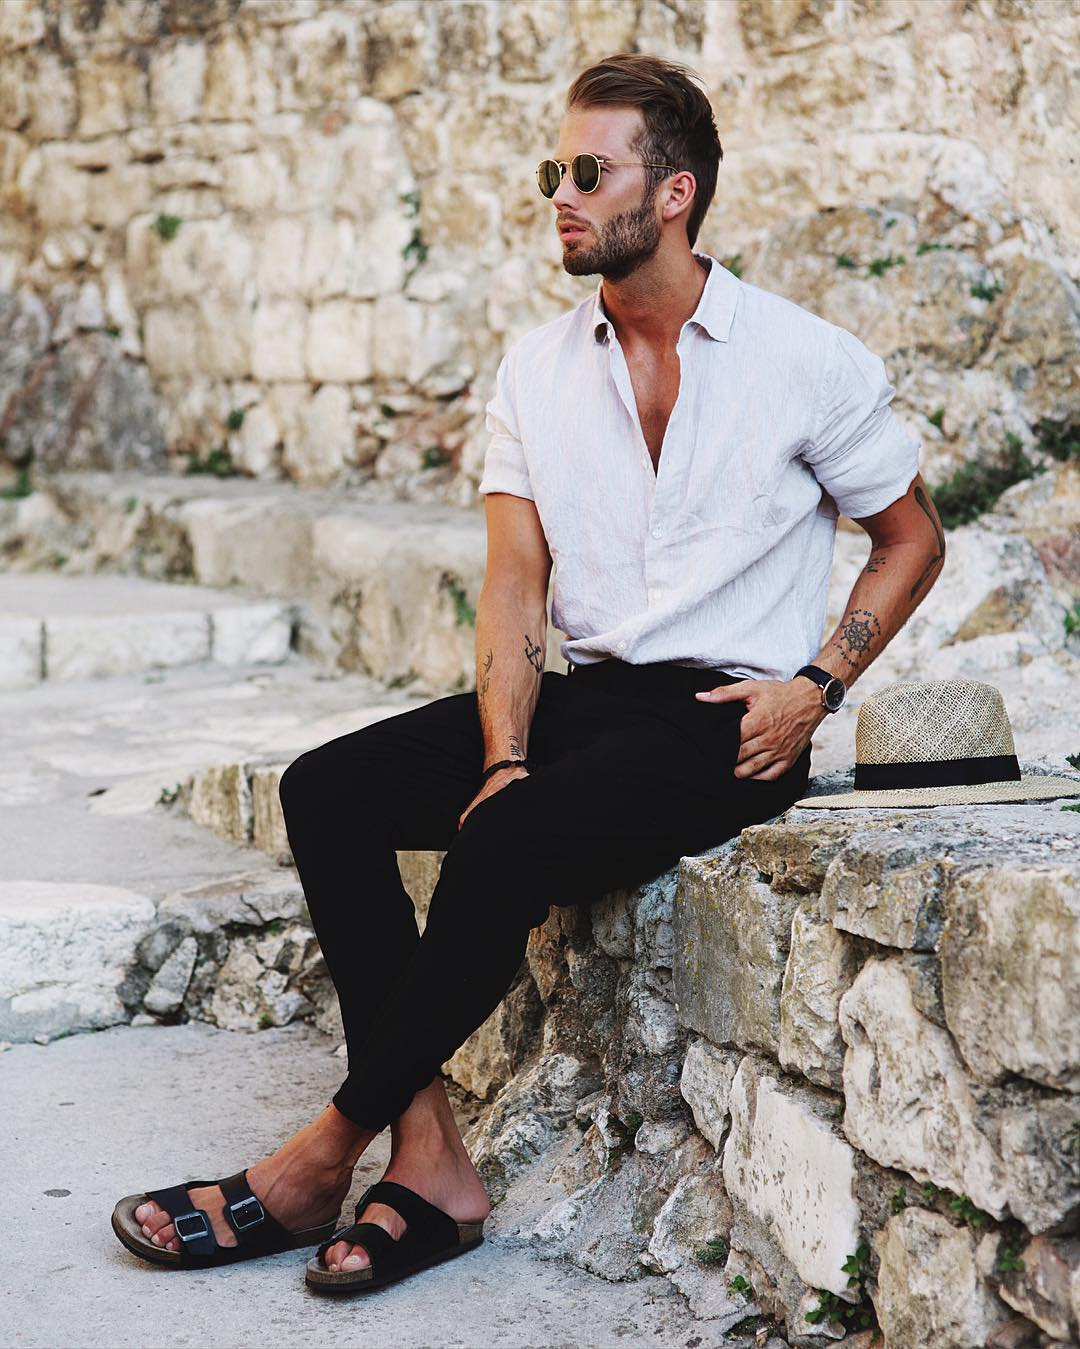 We rounded up 8 amazing looks you can try with your white shirt, from pairing it with ripped denim or cool chinos.   Now, to help you style your white shirt right, we've put together 8 insanely cool photos of guys wearing a crisp white shirt.